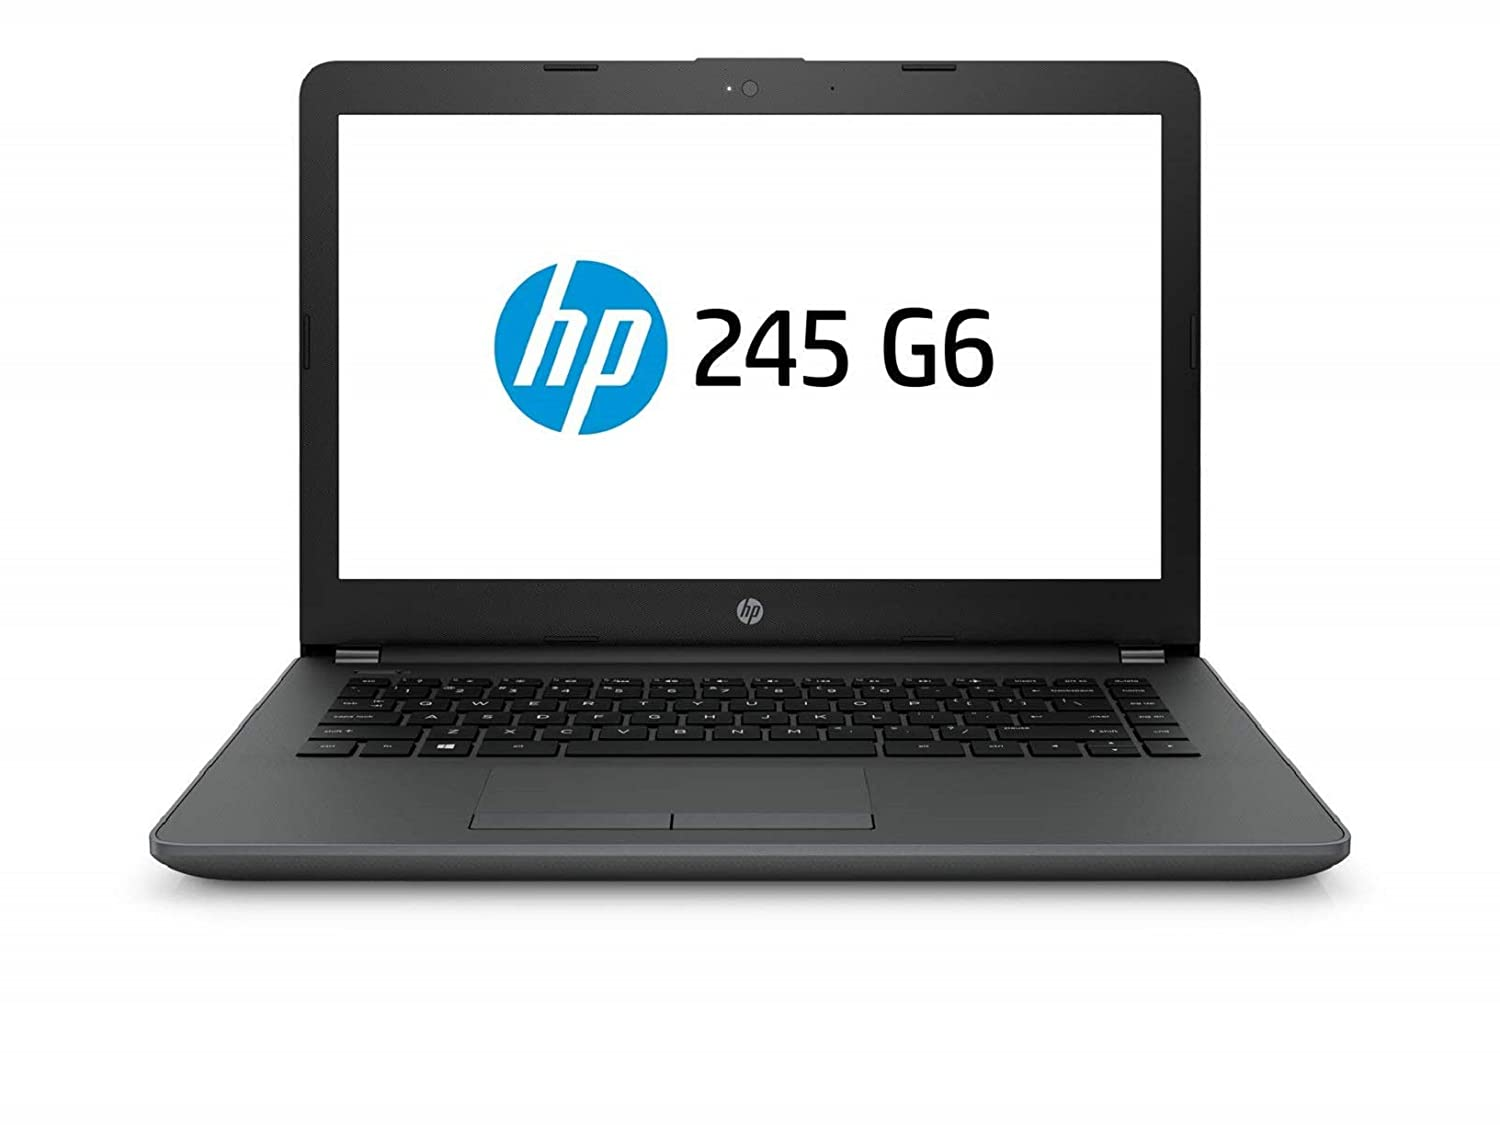 HP 245 best laptop under 20k